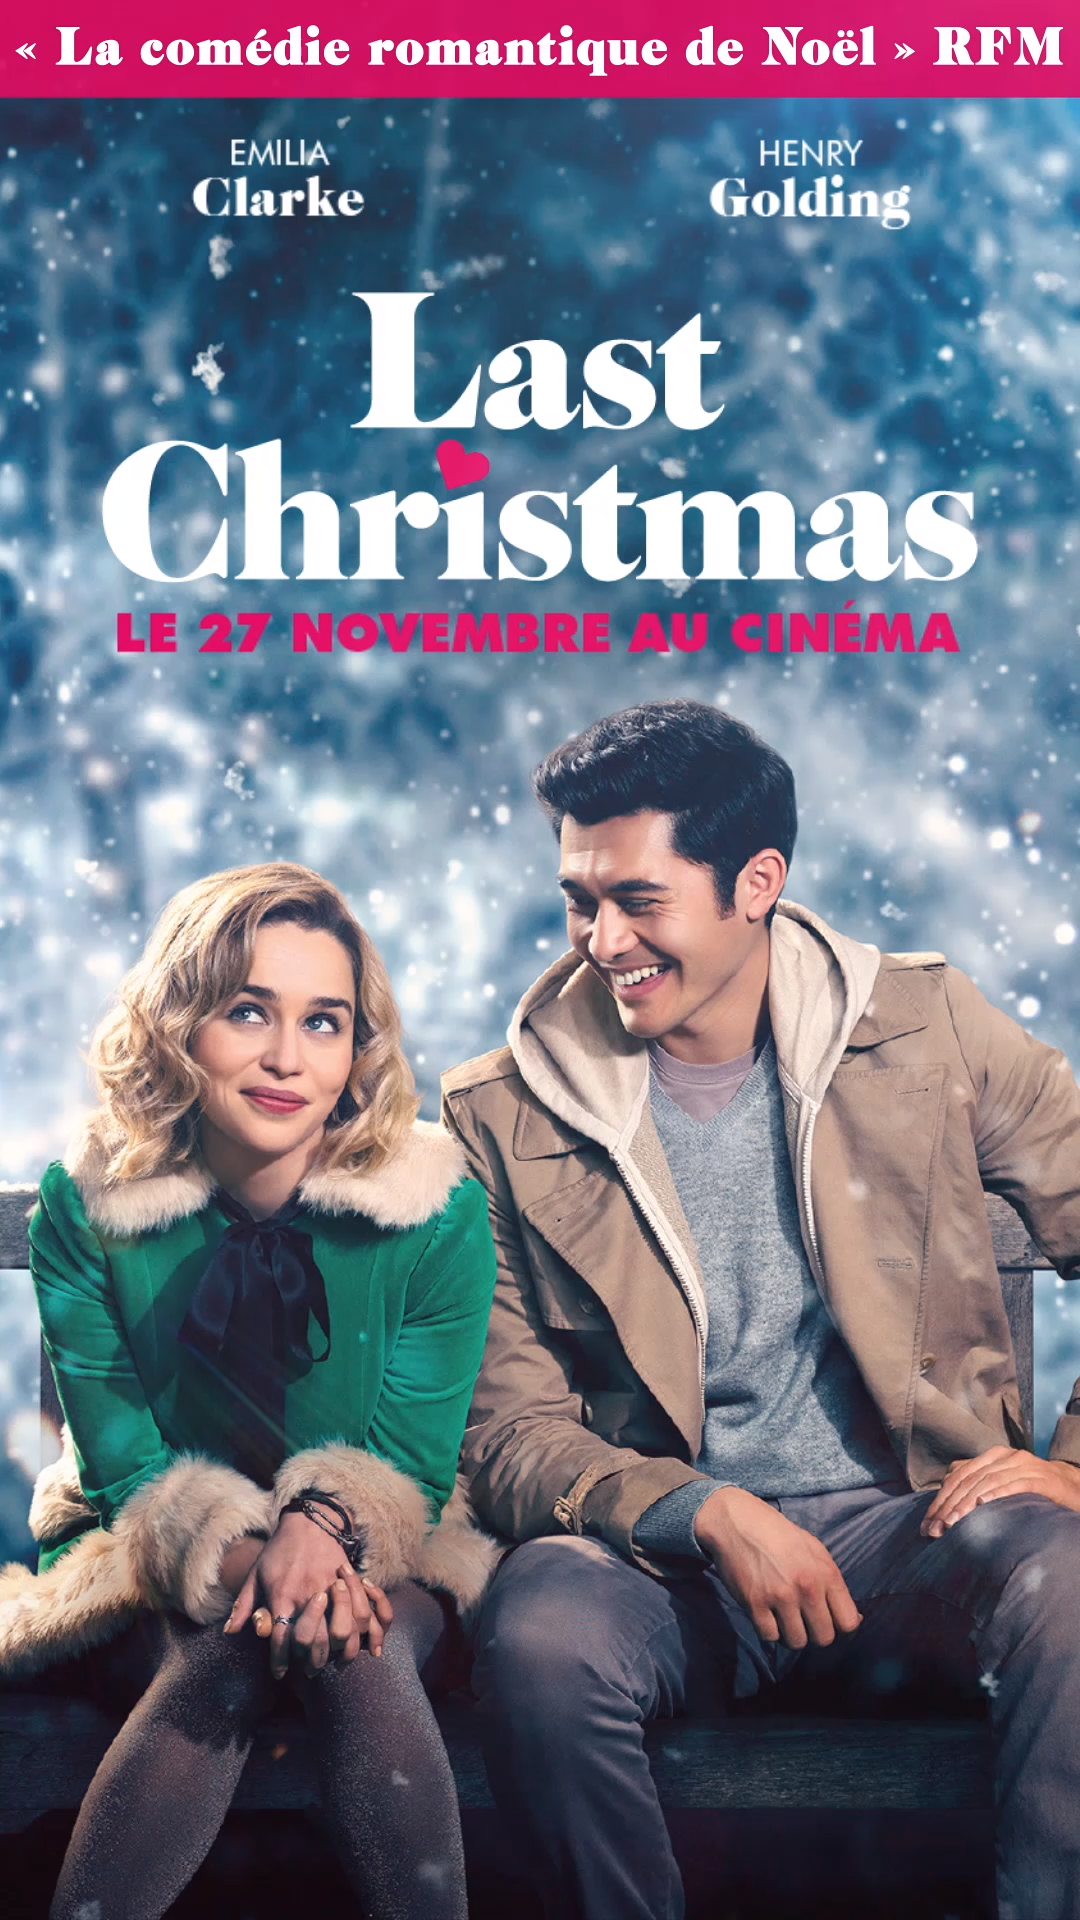 Last Christmas Le 27 Novembre Au Cinema In 2020 Last Christmas